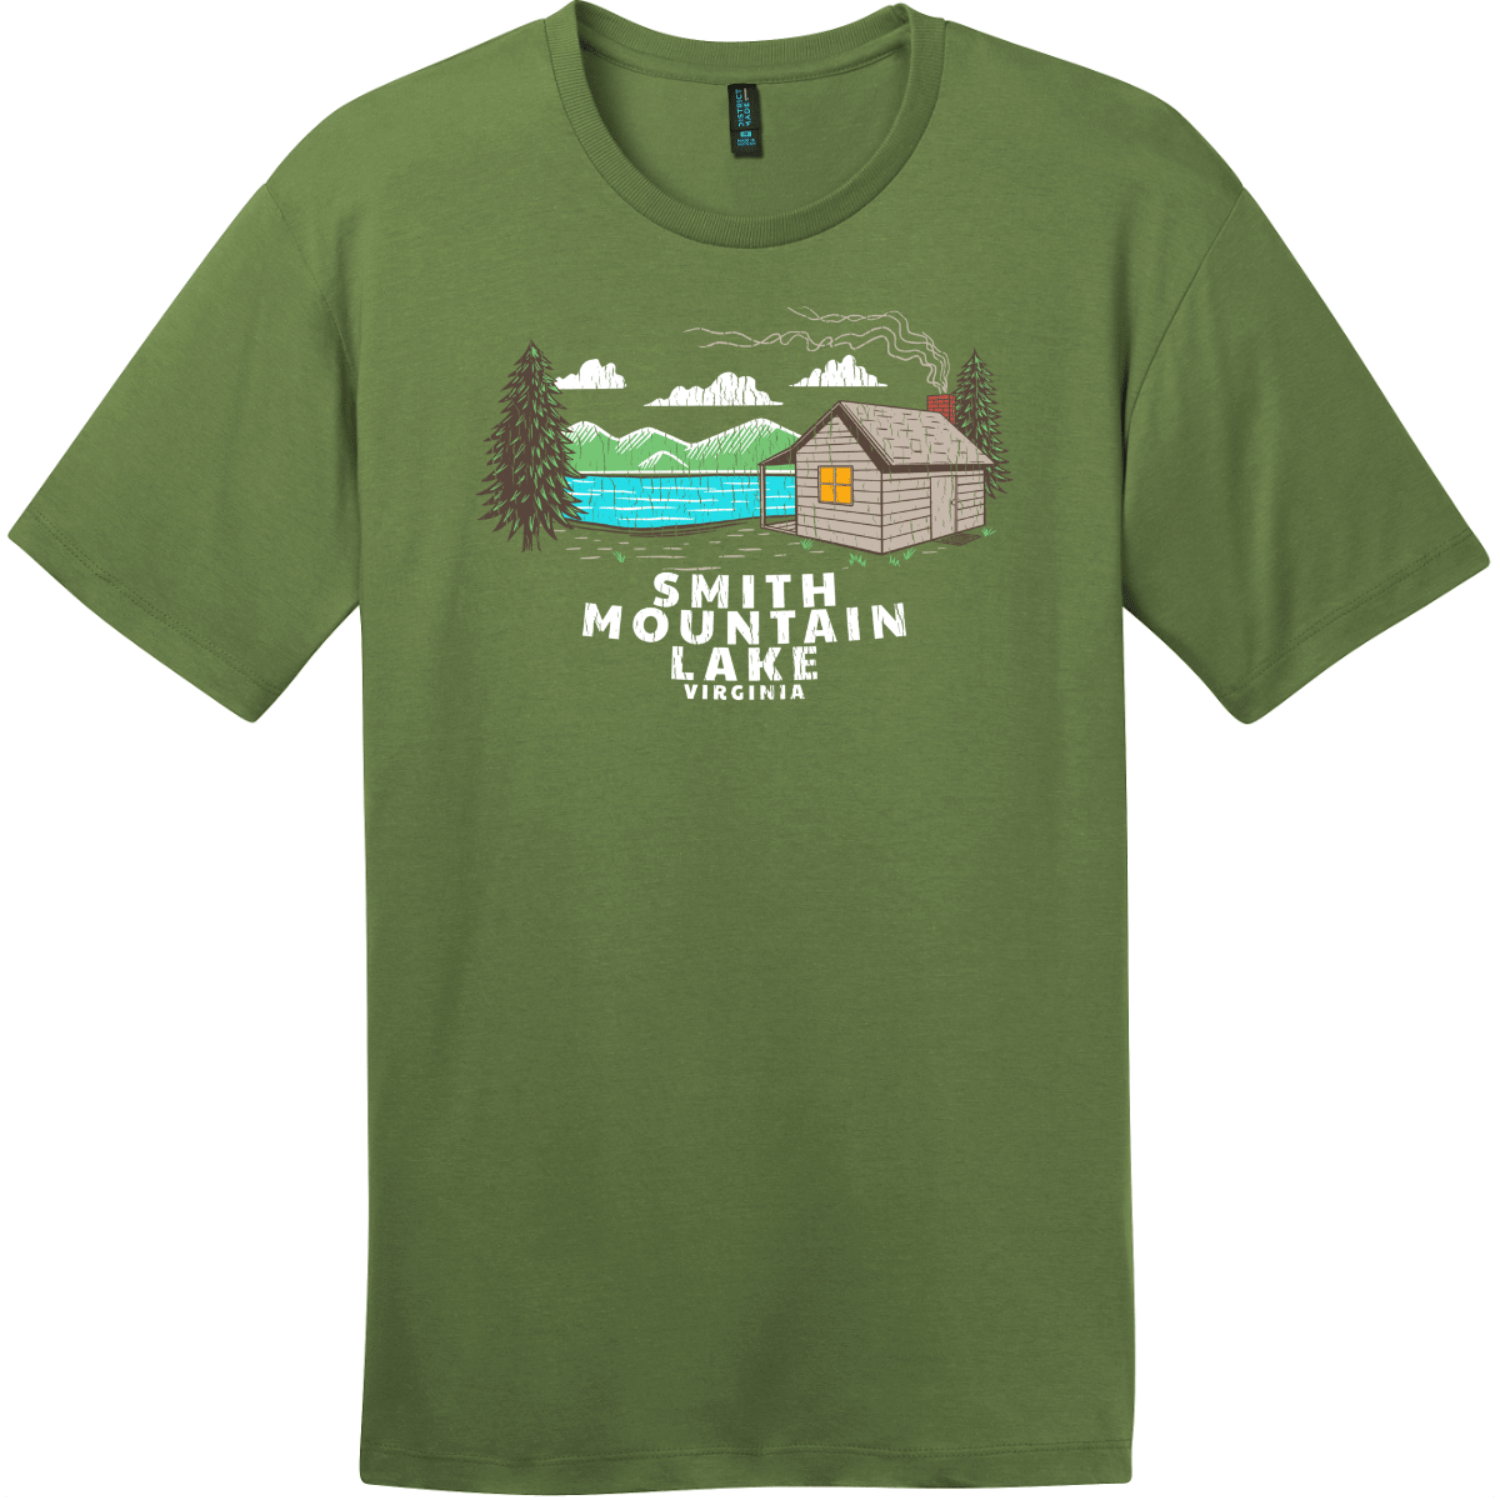 Smith Mountain Lake Vintage T-Shirt Fresh Fatigue District Perfect Weight Tee DT104